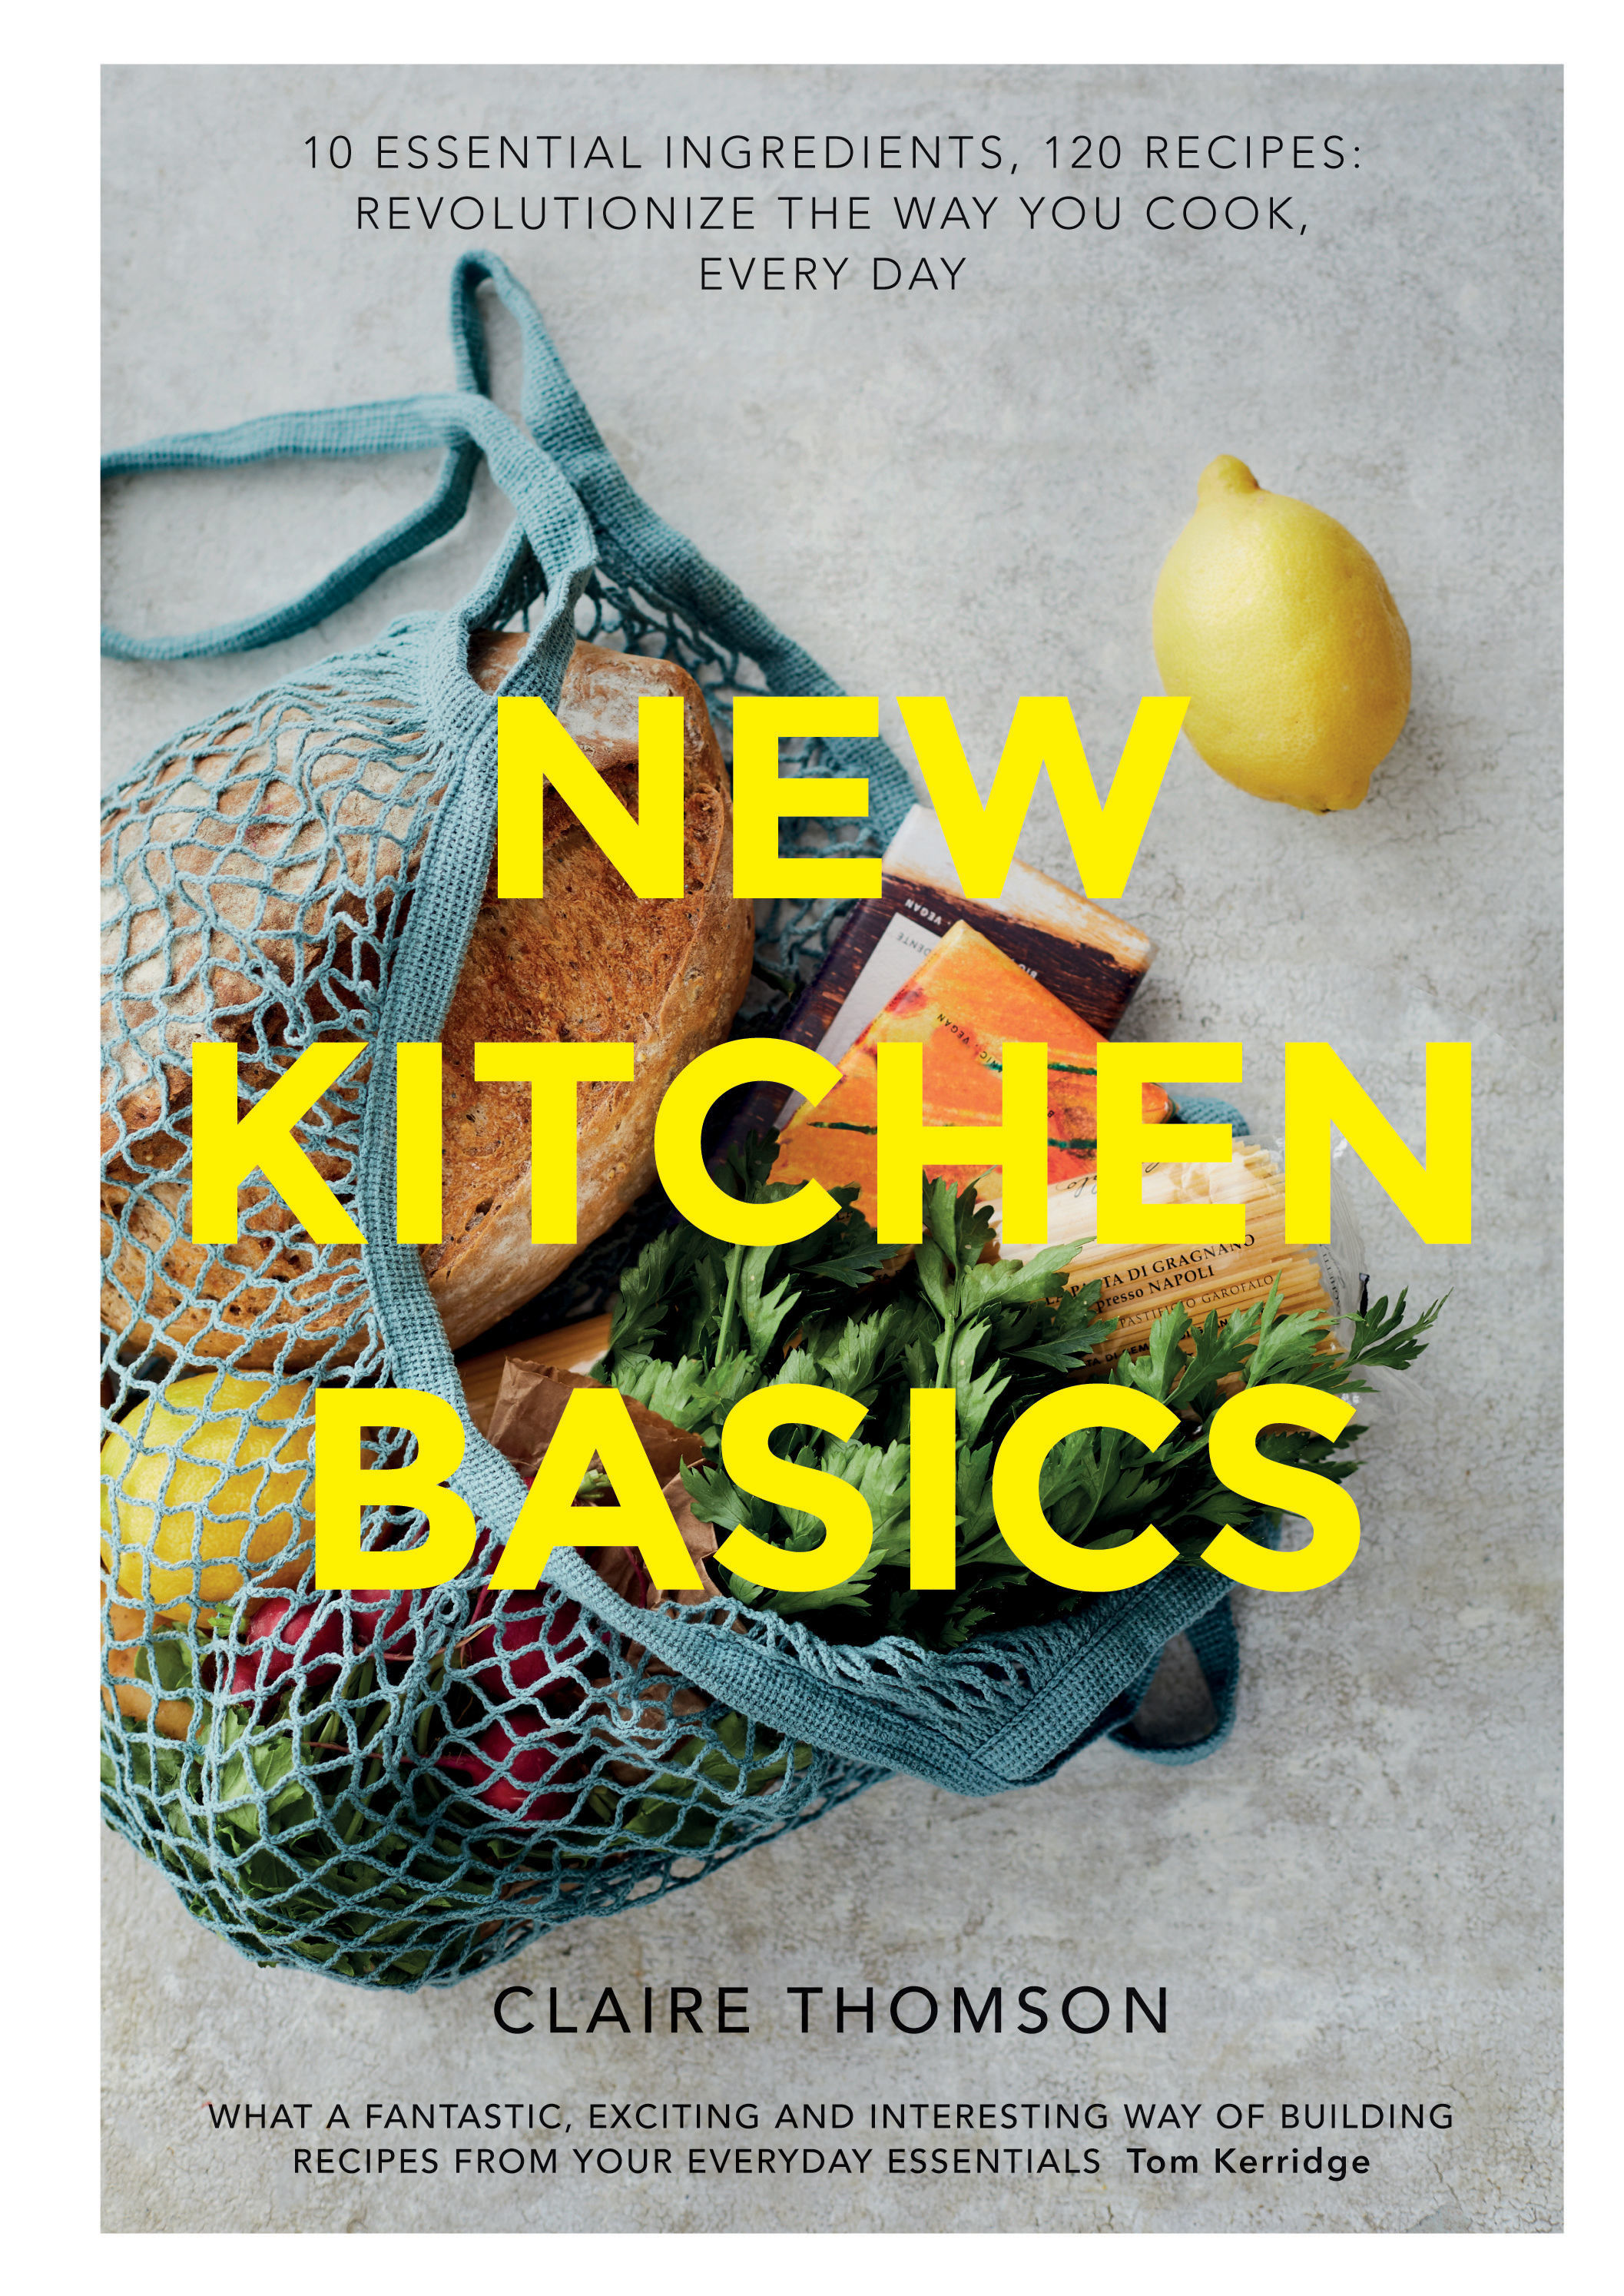 New Kitchen Basics  by Claire Thomson, photography by Sam Folan is on sale now.